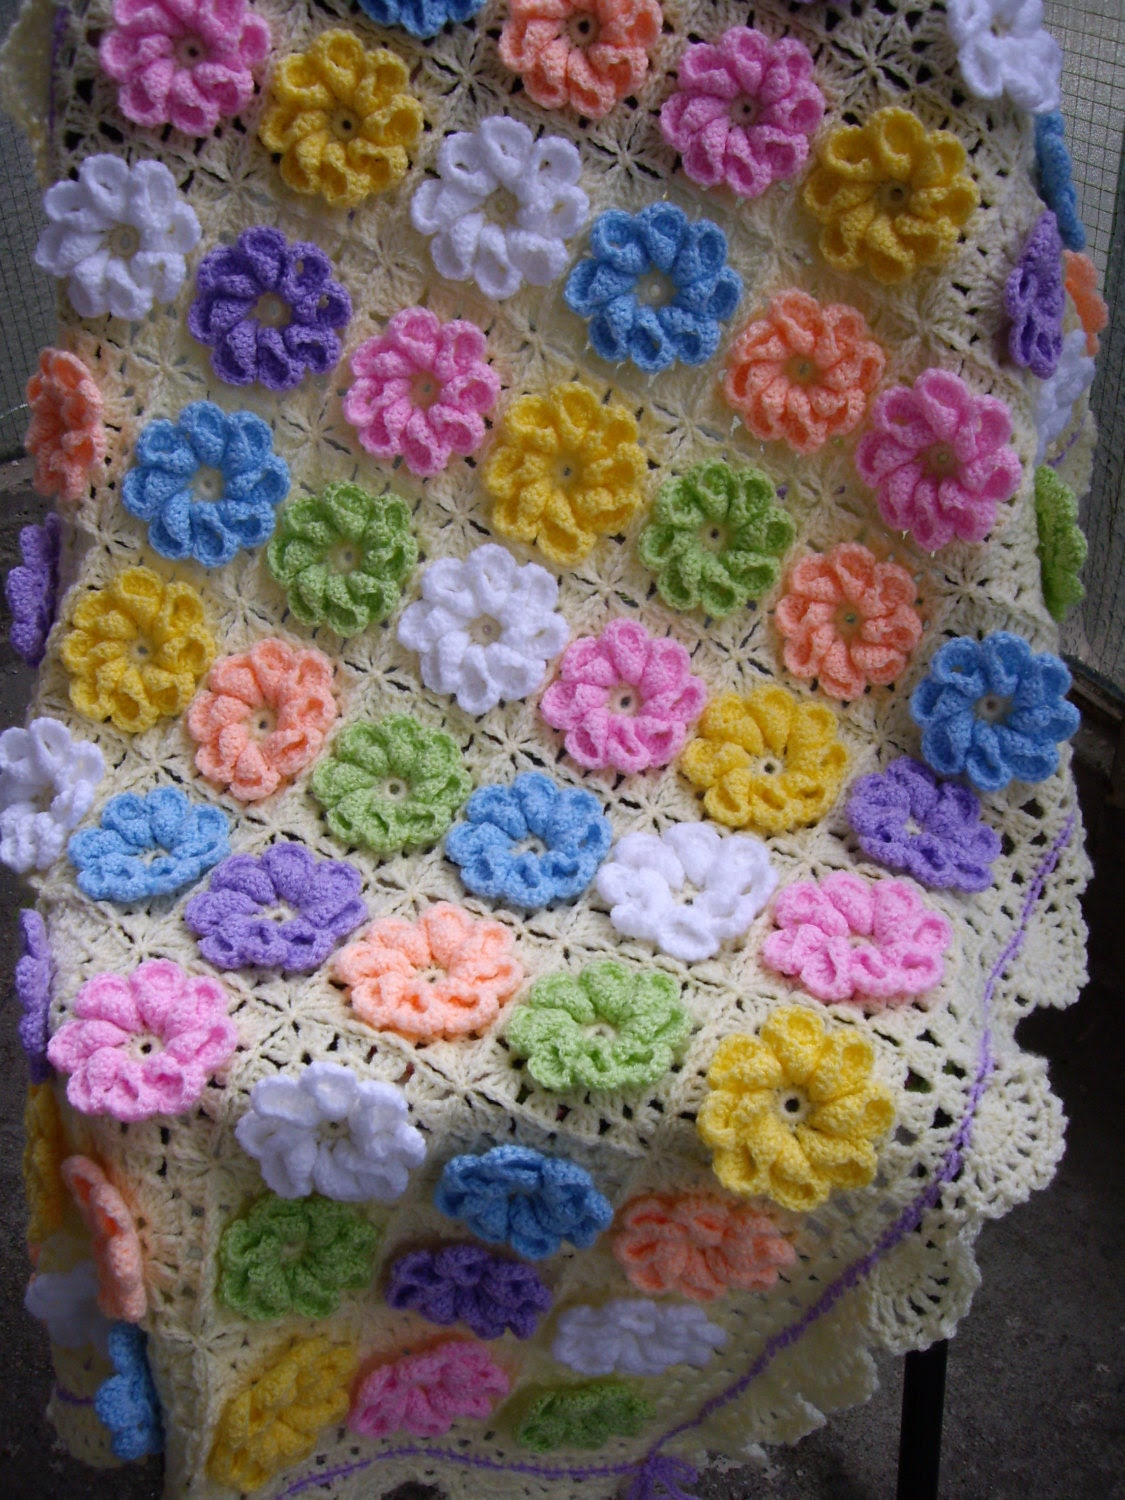 Granny Square Crochet Blanket ... Baby Crib Blanket ... Colorful Knitting Patchwork Baby Afghan ...